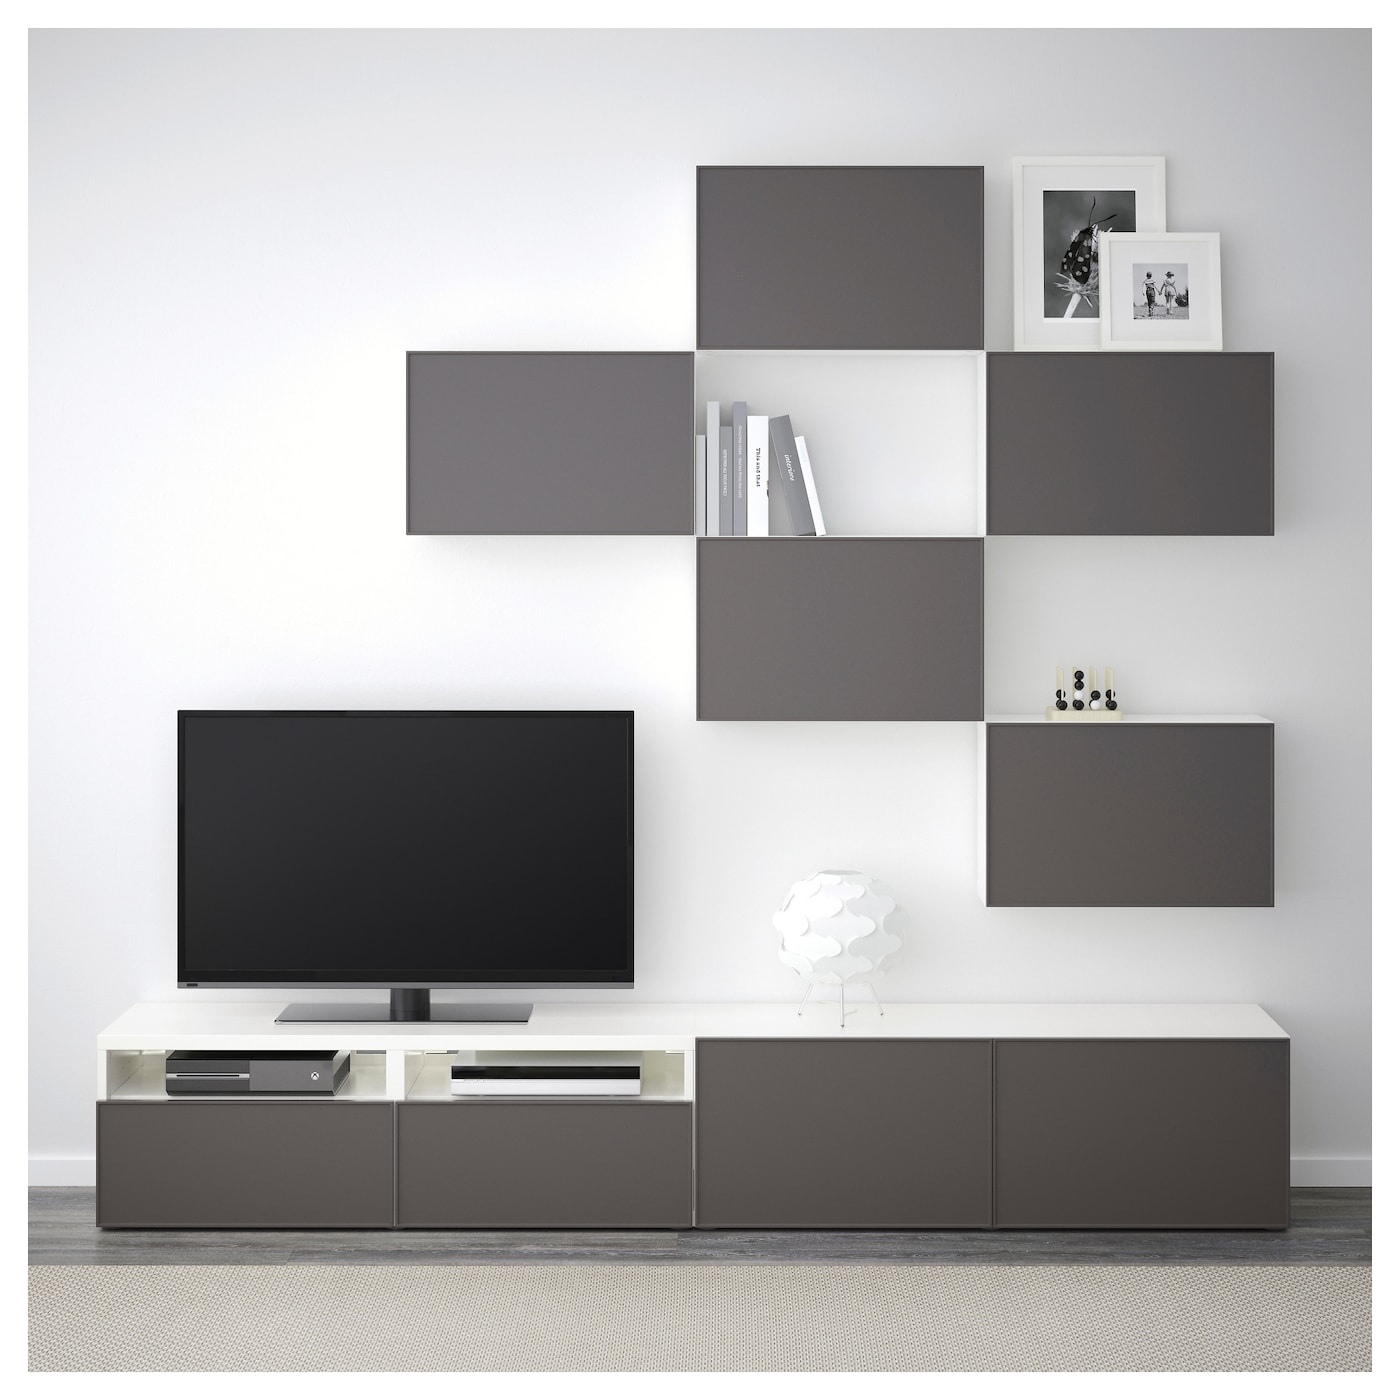 best combinaison meuble tv blanc grundsviken gris fonc 240x20 40x204 cm ikea. Black Bedroom Furniture Sets. Home Design Ideas